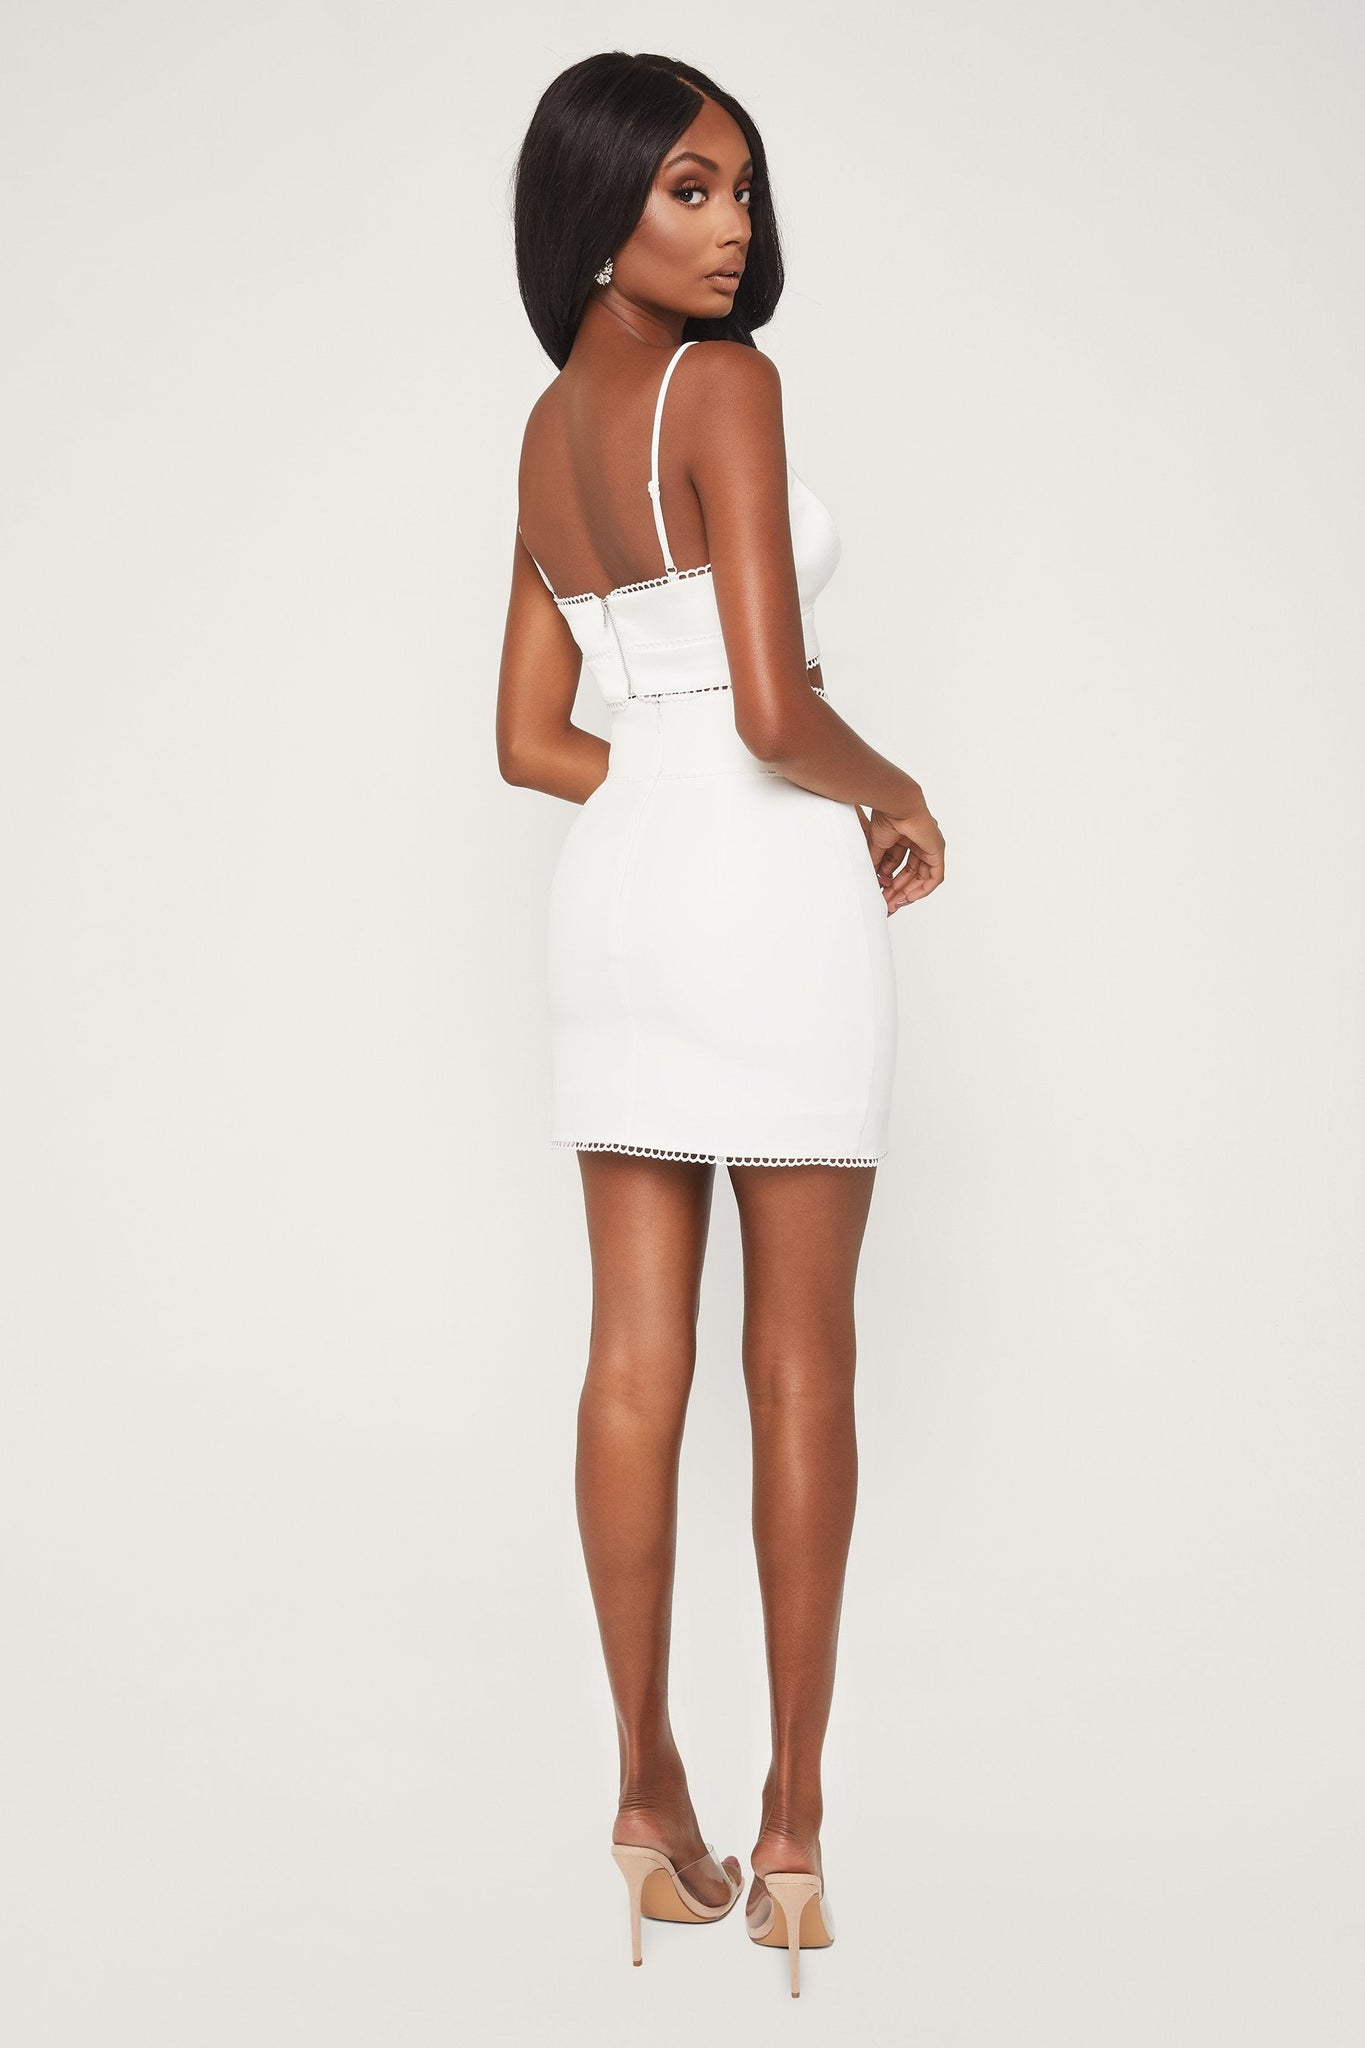 Lessie Lace Trim Mini Skirt - White - MESHKI